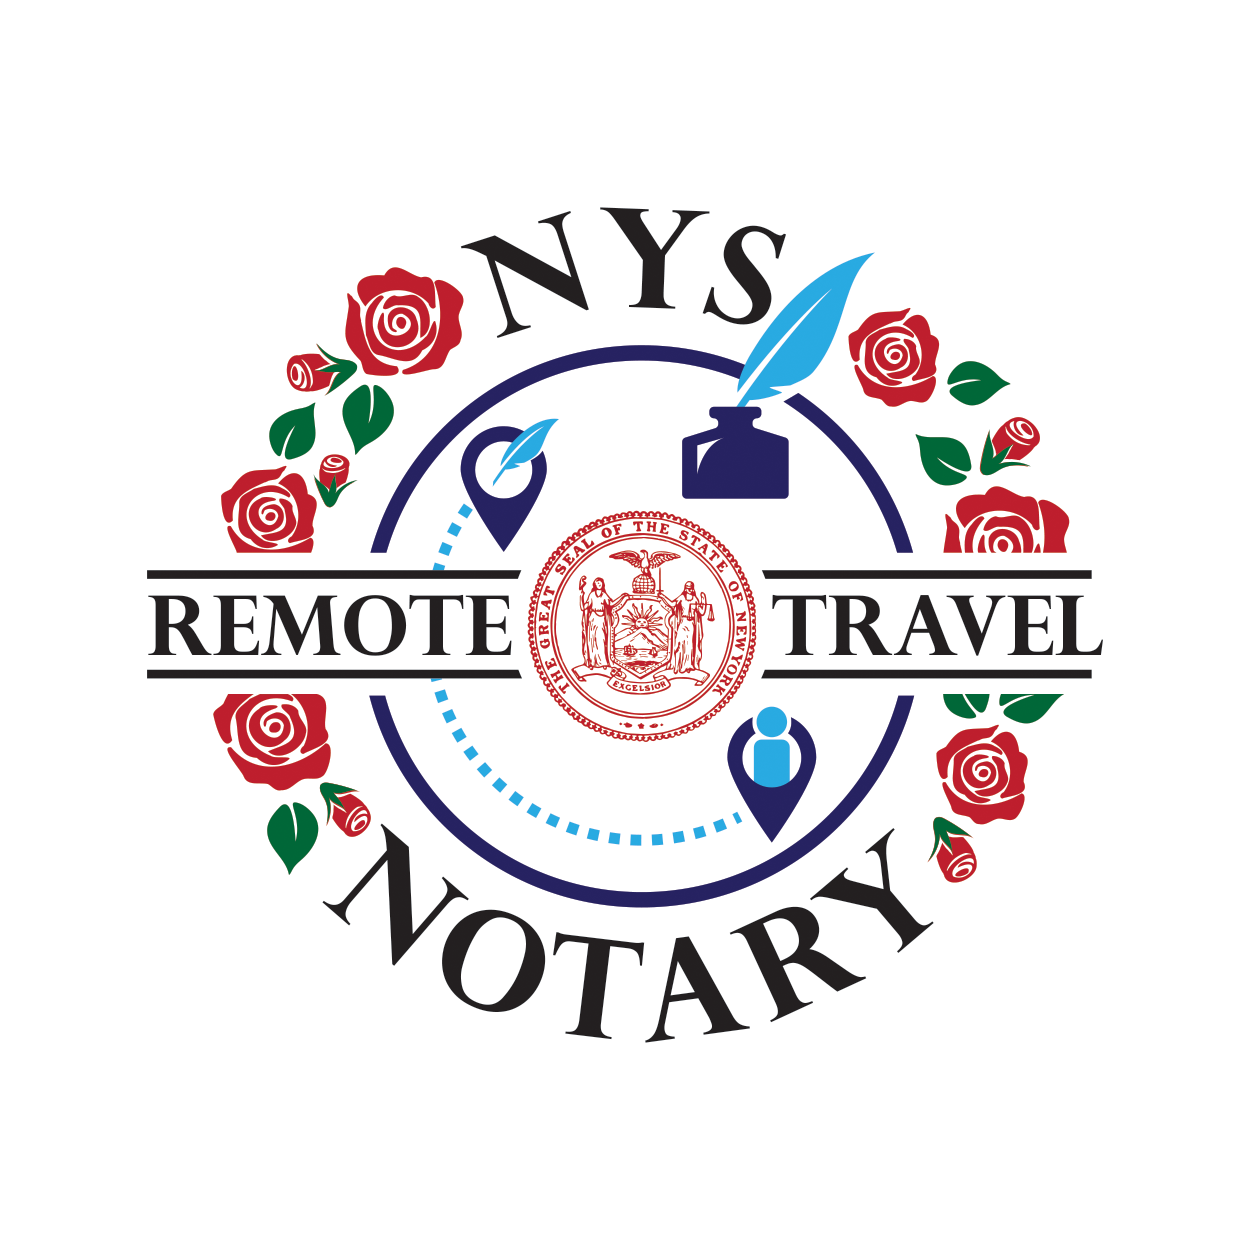 NYS Remote & Travel Notary